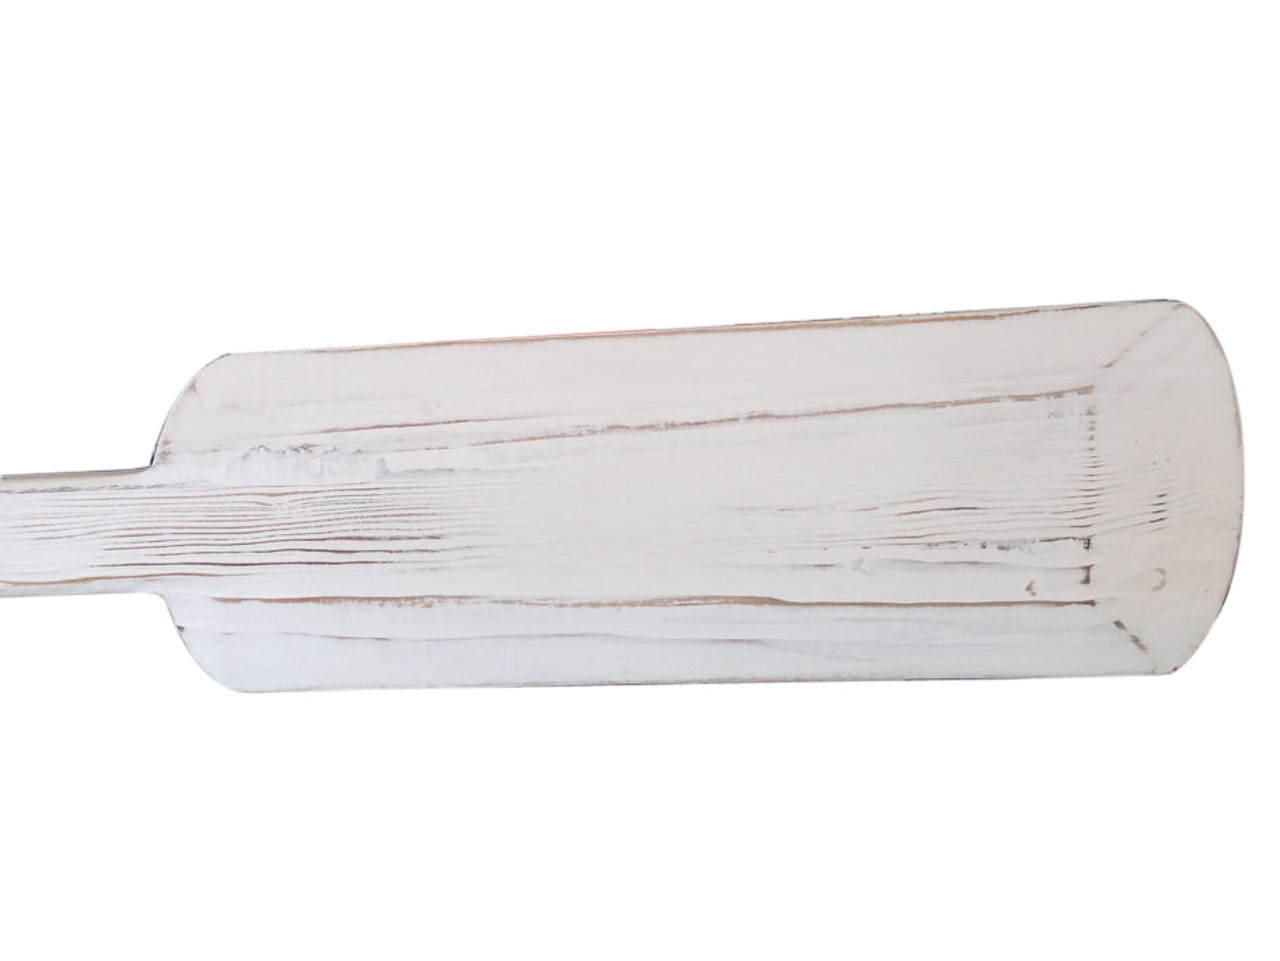 Decorative Wooden Rowing Oar Driftwood Bright White